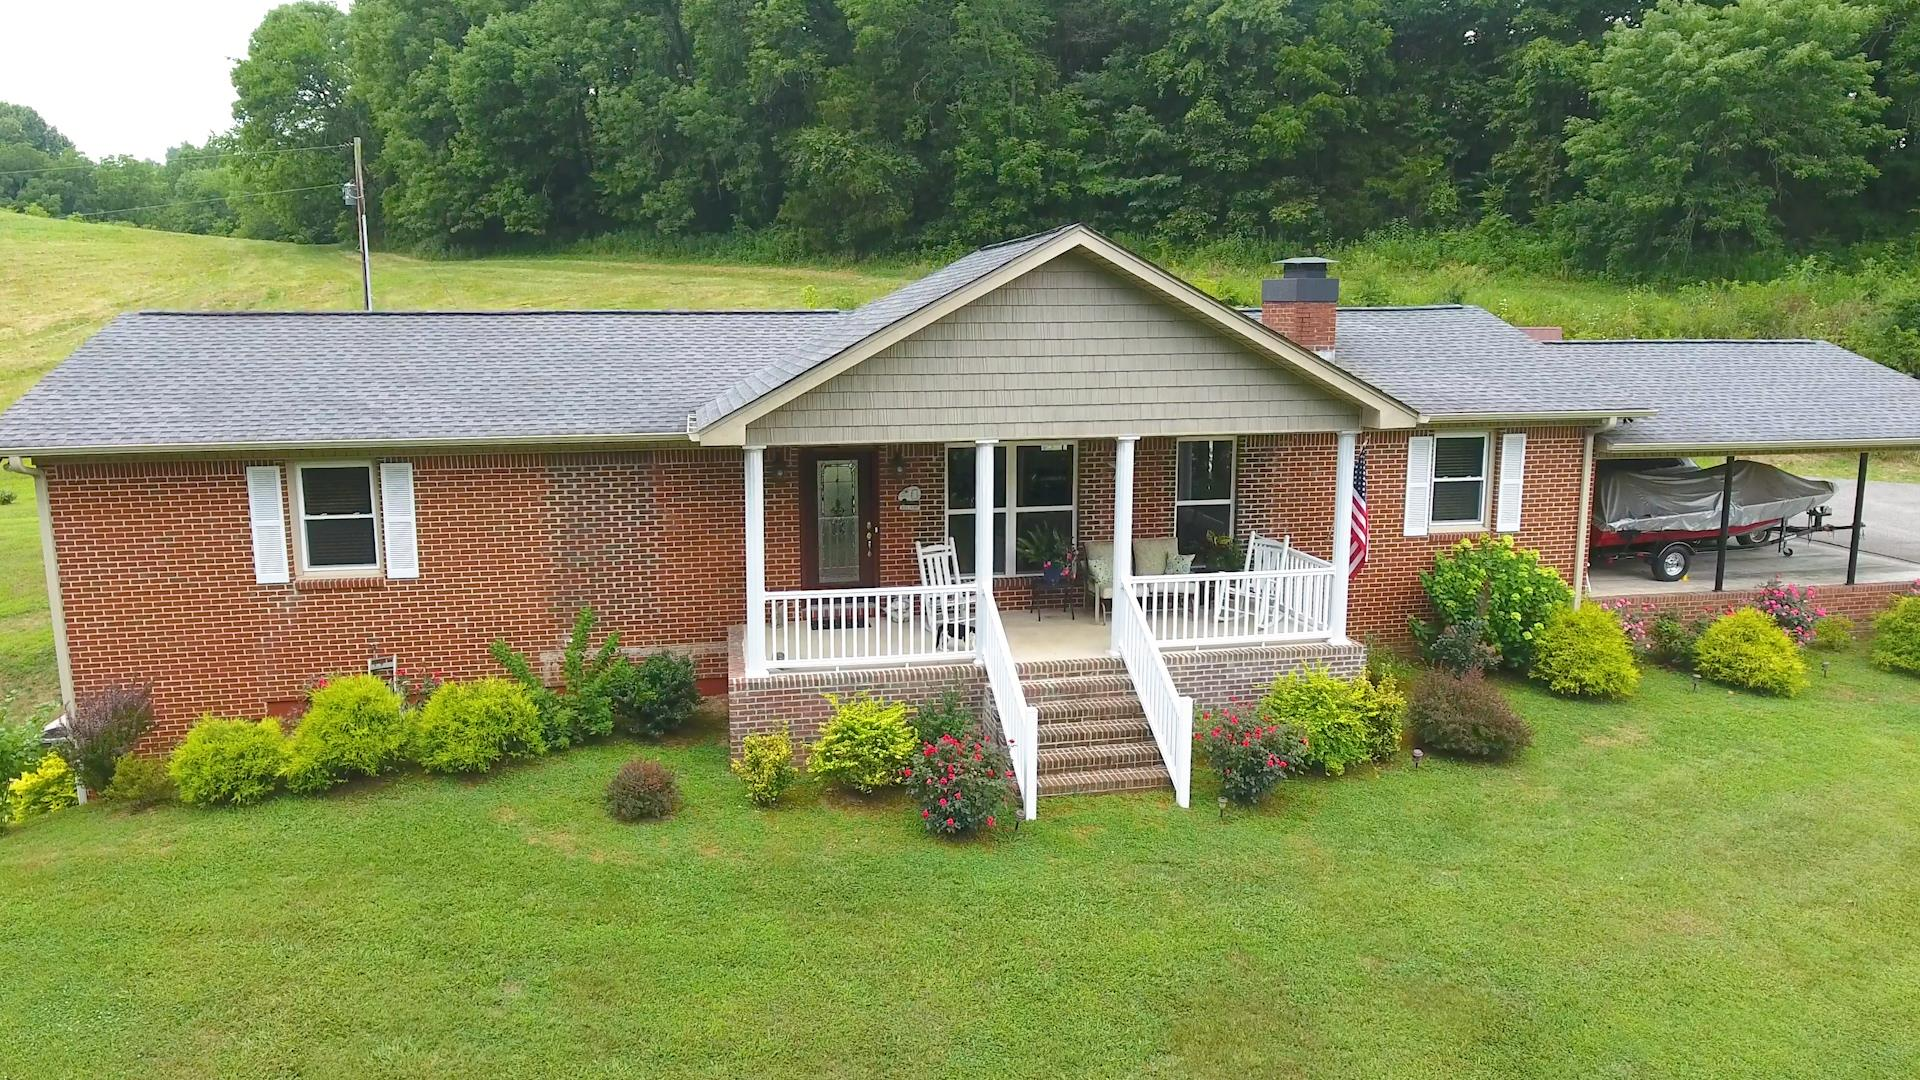 335 Old Lincoln Rd, Fayetteville, TN 37334 - Fayetteville, TN real estate listing